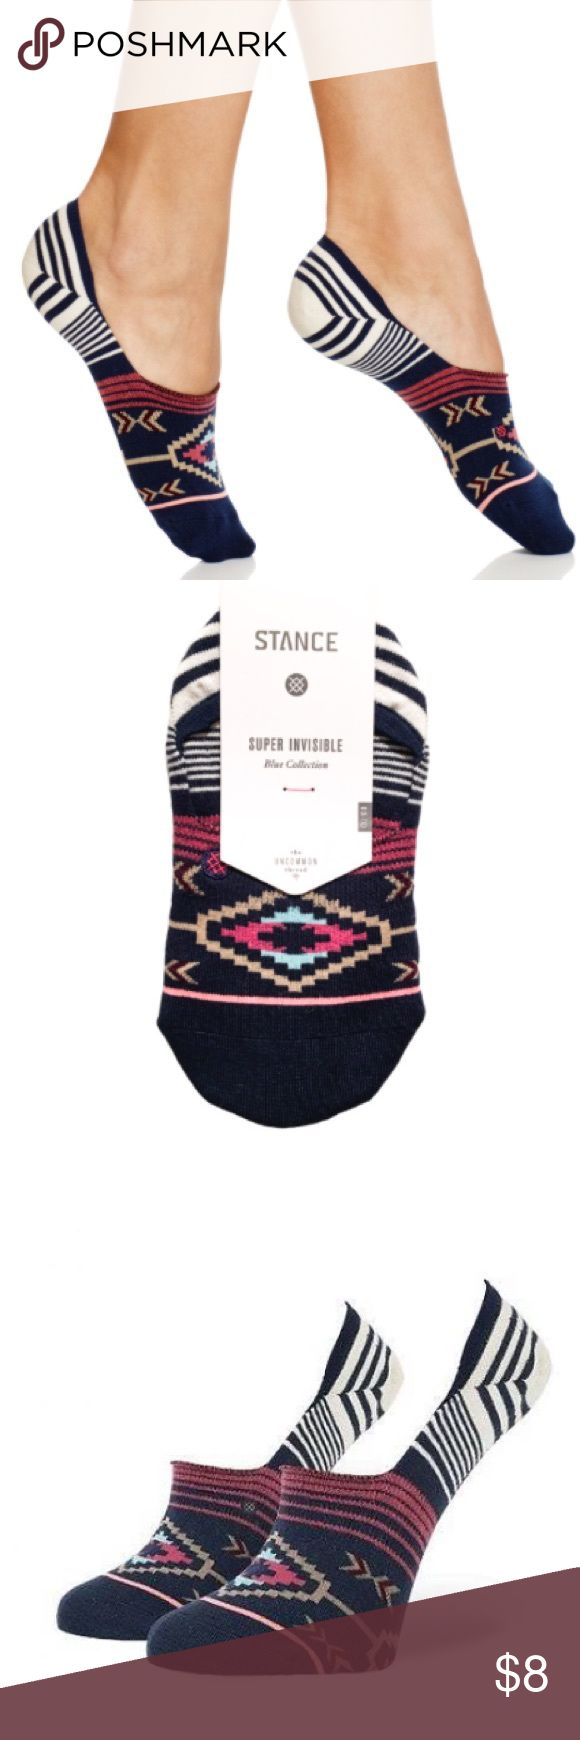 Stance Prickly Pear super invisible socks Stance prickly pear super invisible socks. Size S fits 5-7.5 Stance Accessories Hosiery & Socks